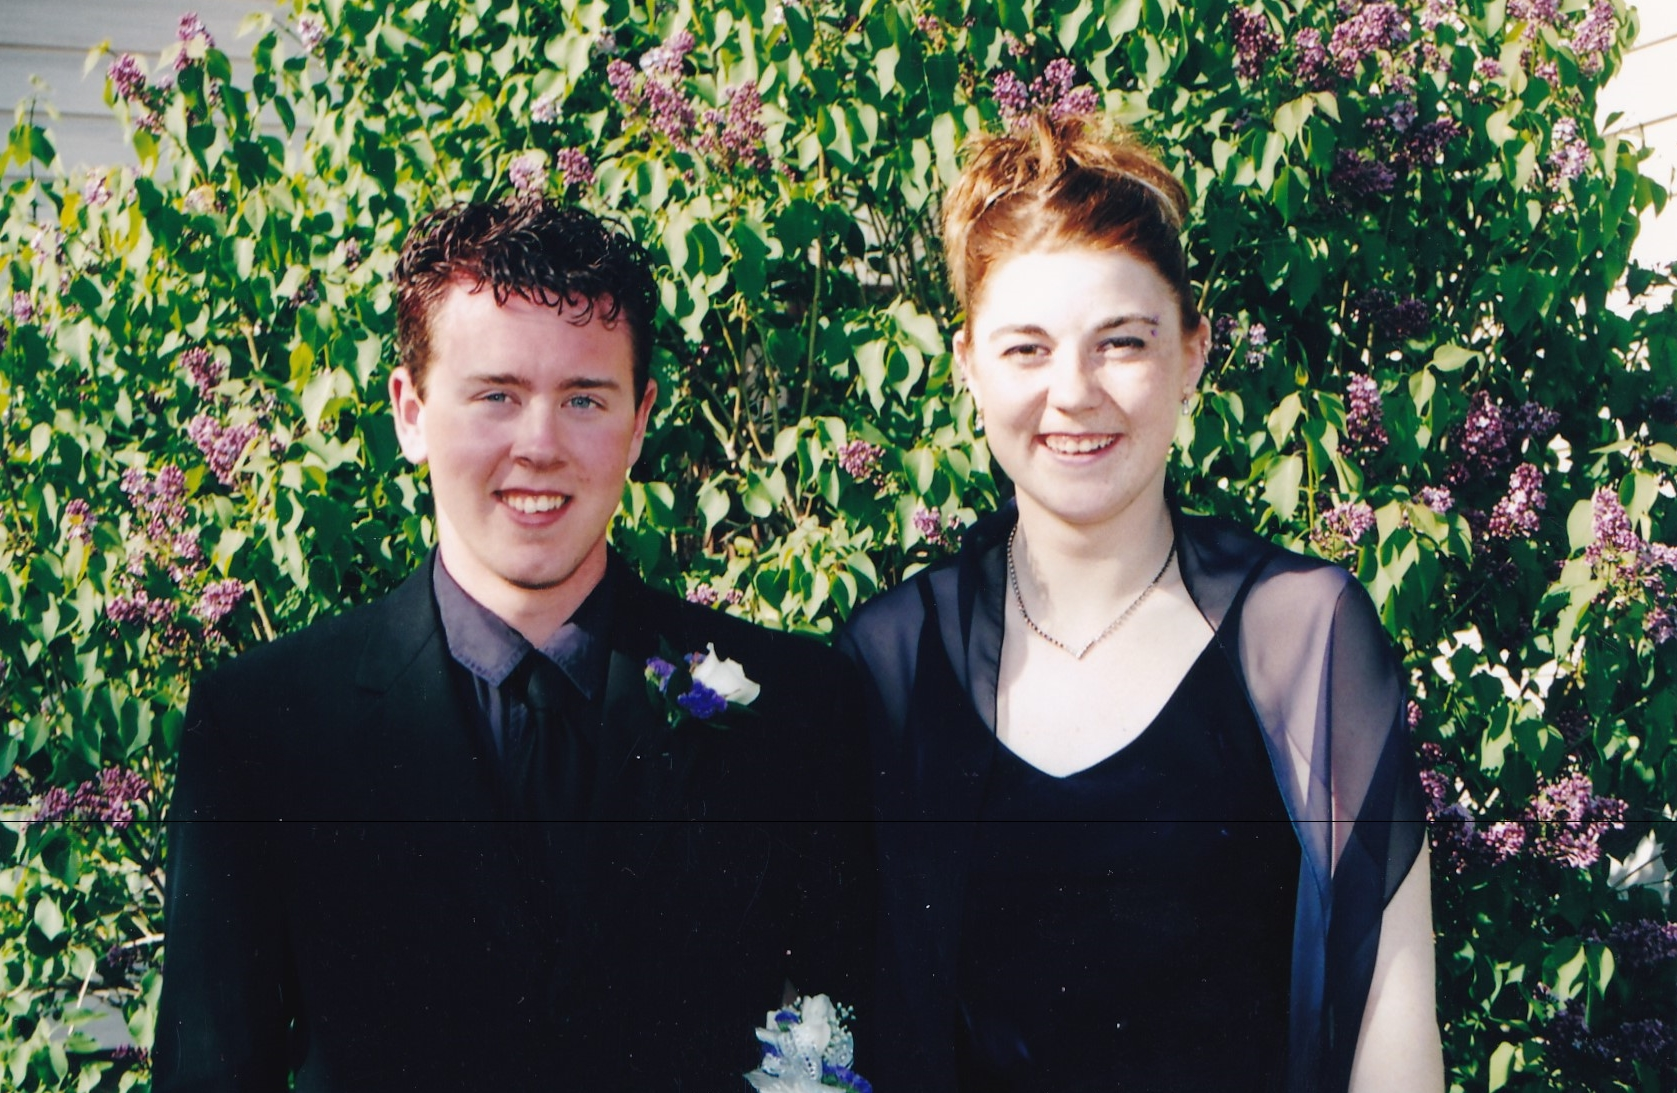 Graduation photographer a waist up shot of me and my date on prom day. Purple was our color but the purple is lost in the difficult exposure